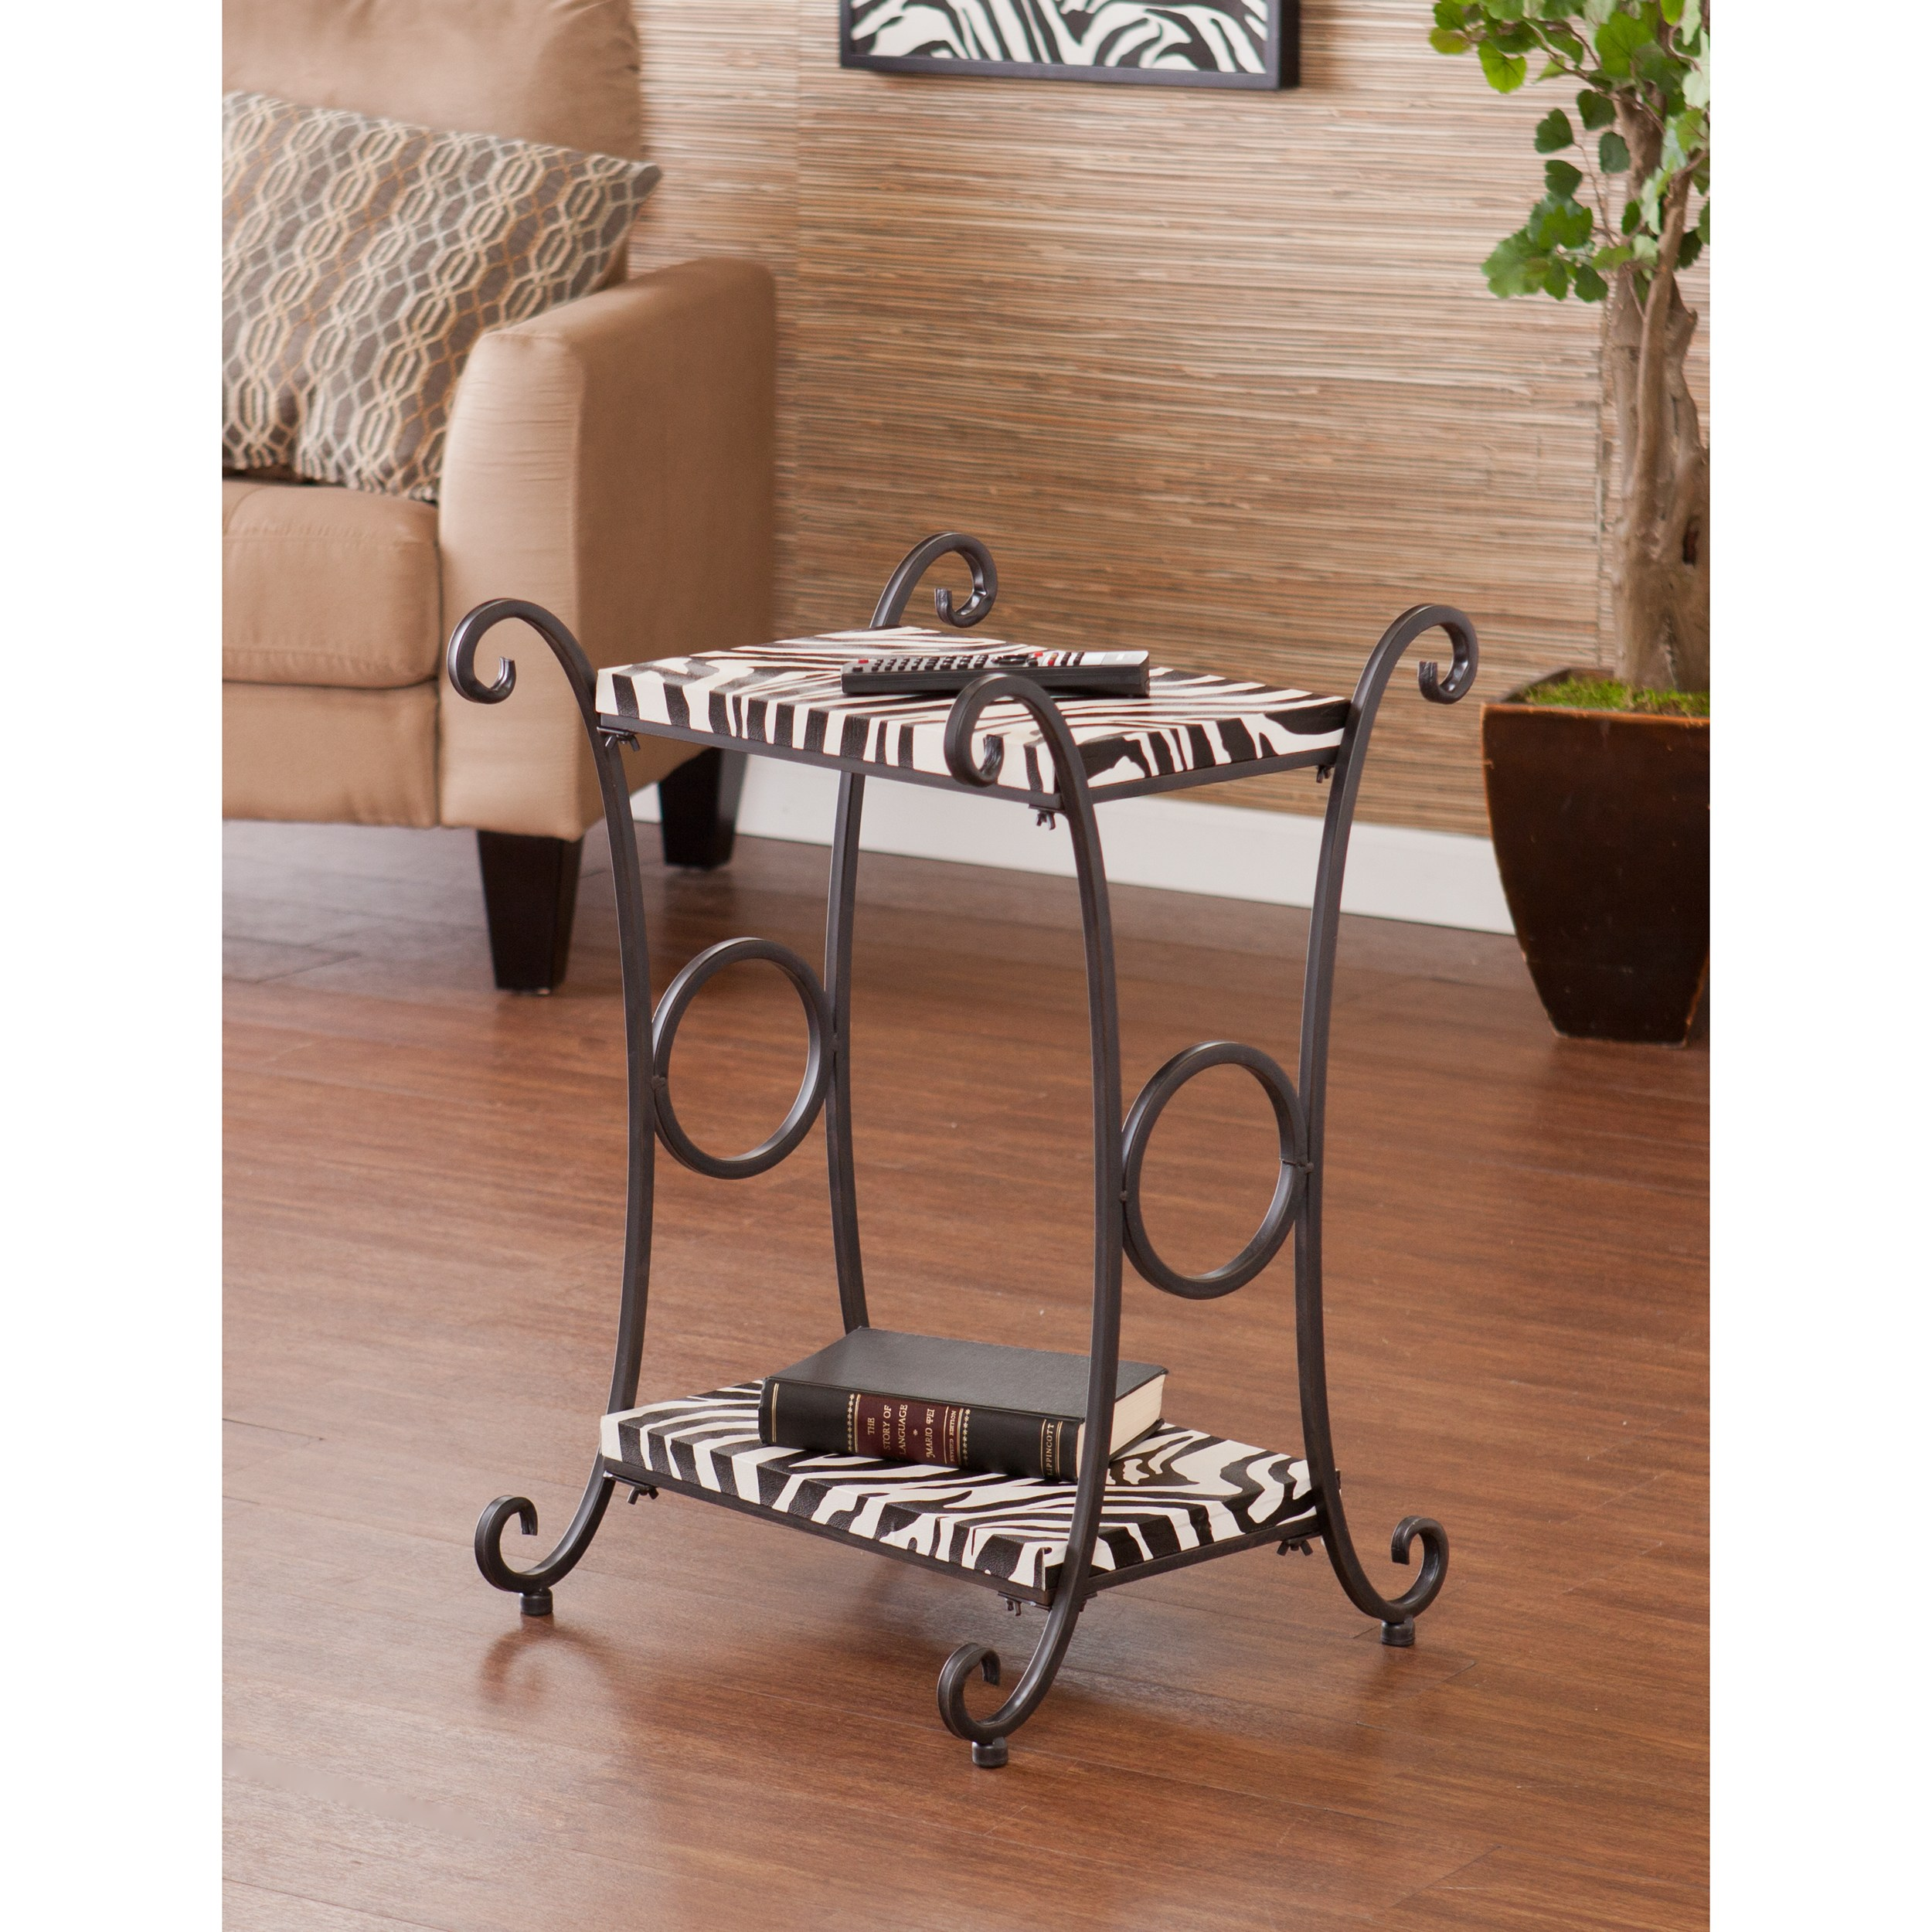 harper blvd castell zebra animal print accent side table upton home multi free shipping today contemporary entry decorative metal legs modern interior design ideas hampton bay